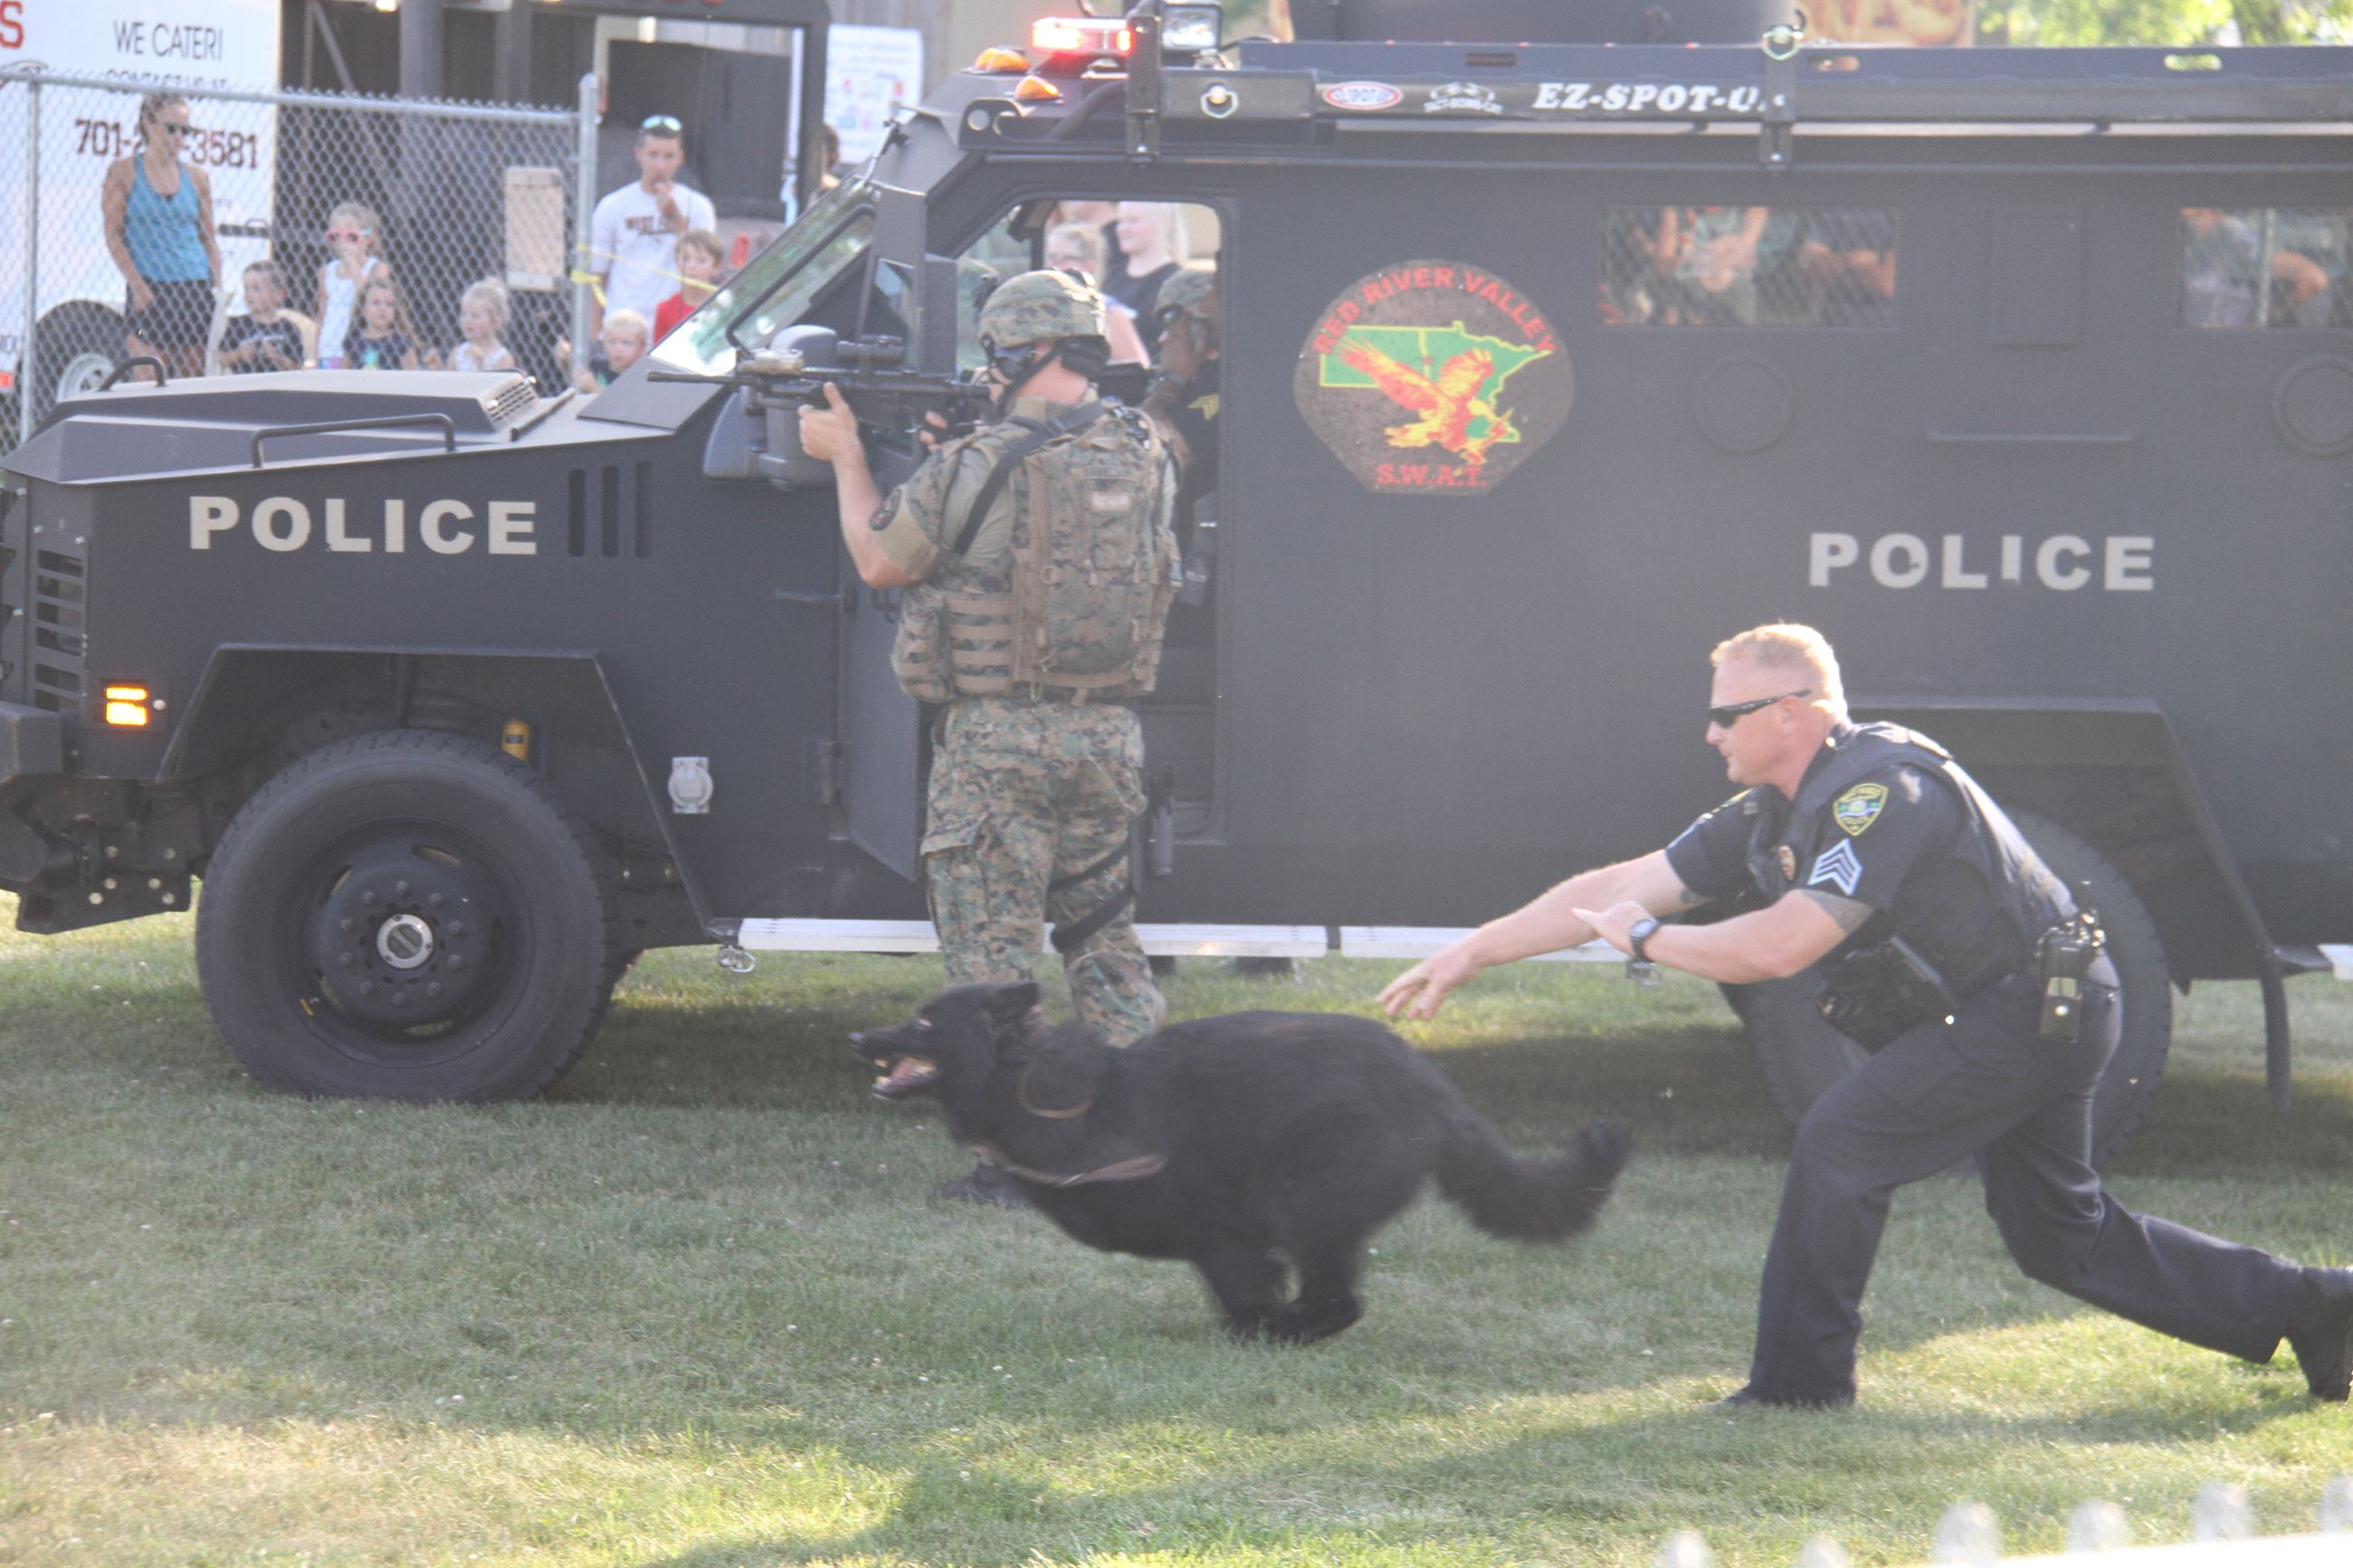 Sgt. Nielsen releases K9 Disco in a SWAT Team demonstration